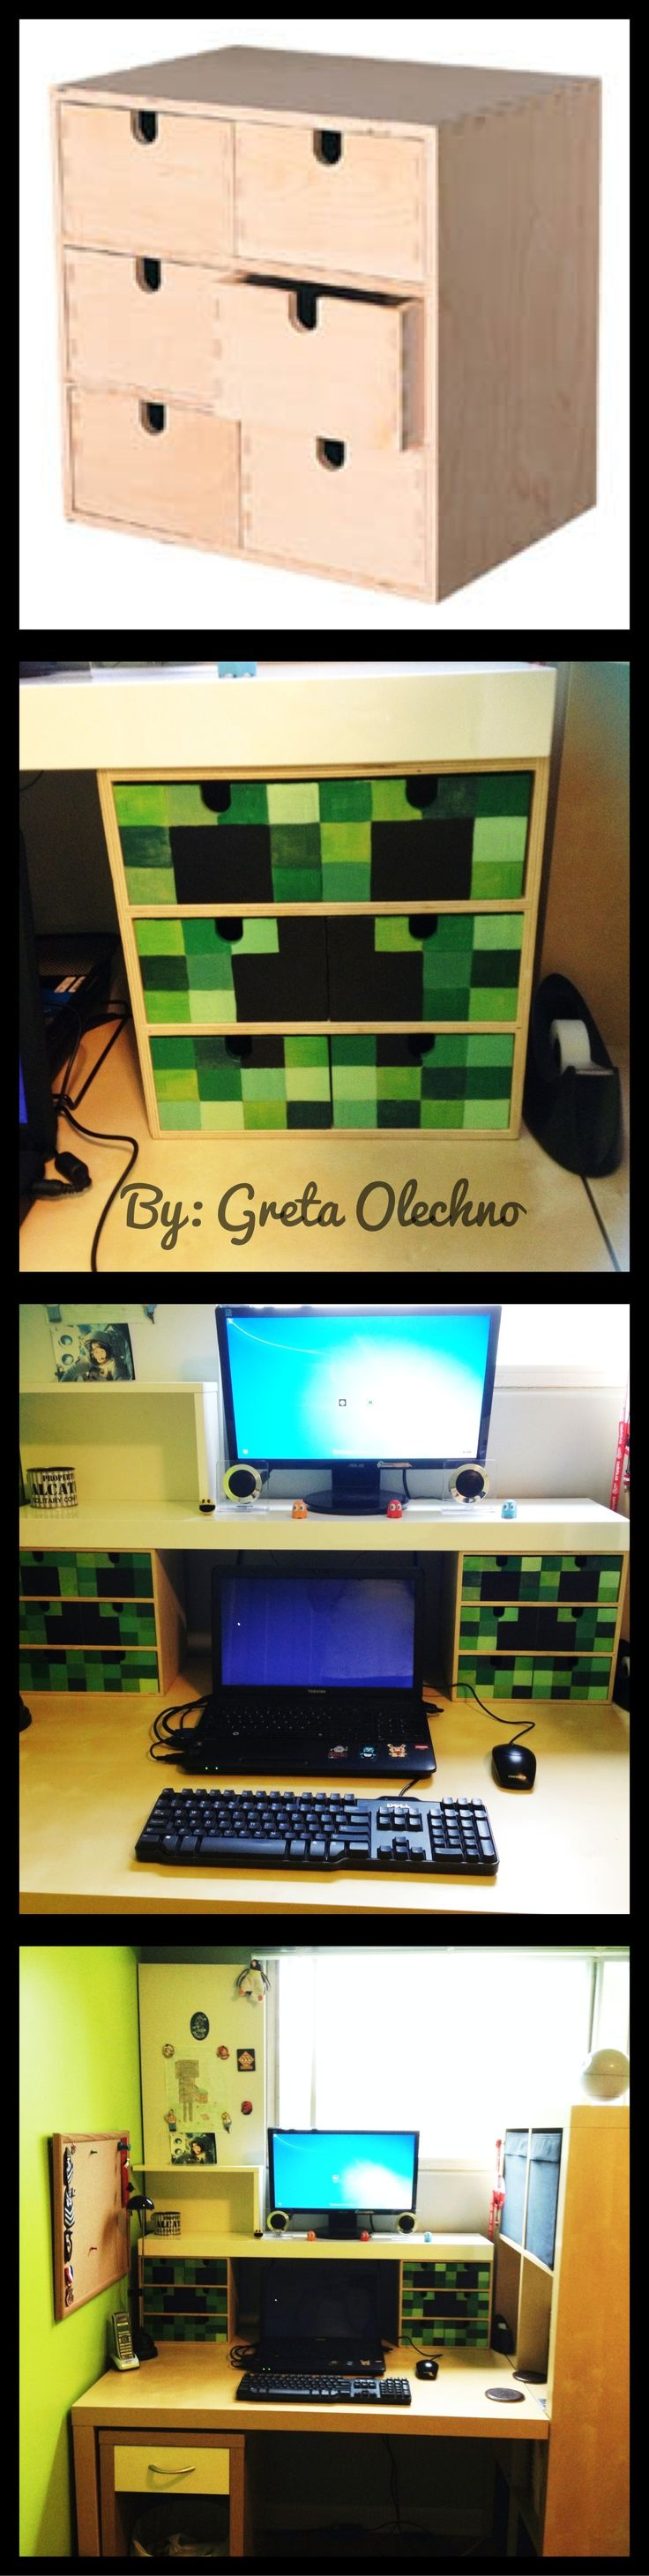 This was my weekend project for my son's room...minecraft creeper drawers from ikea:)